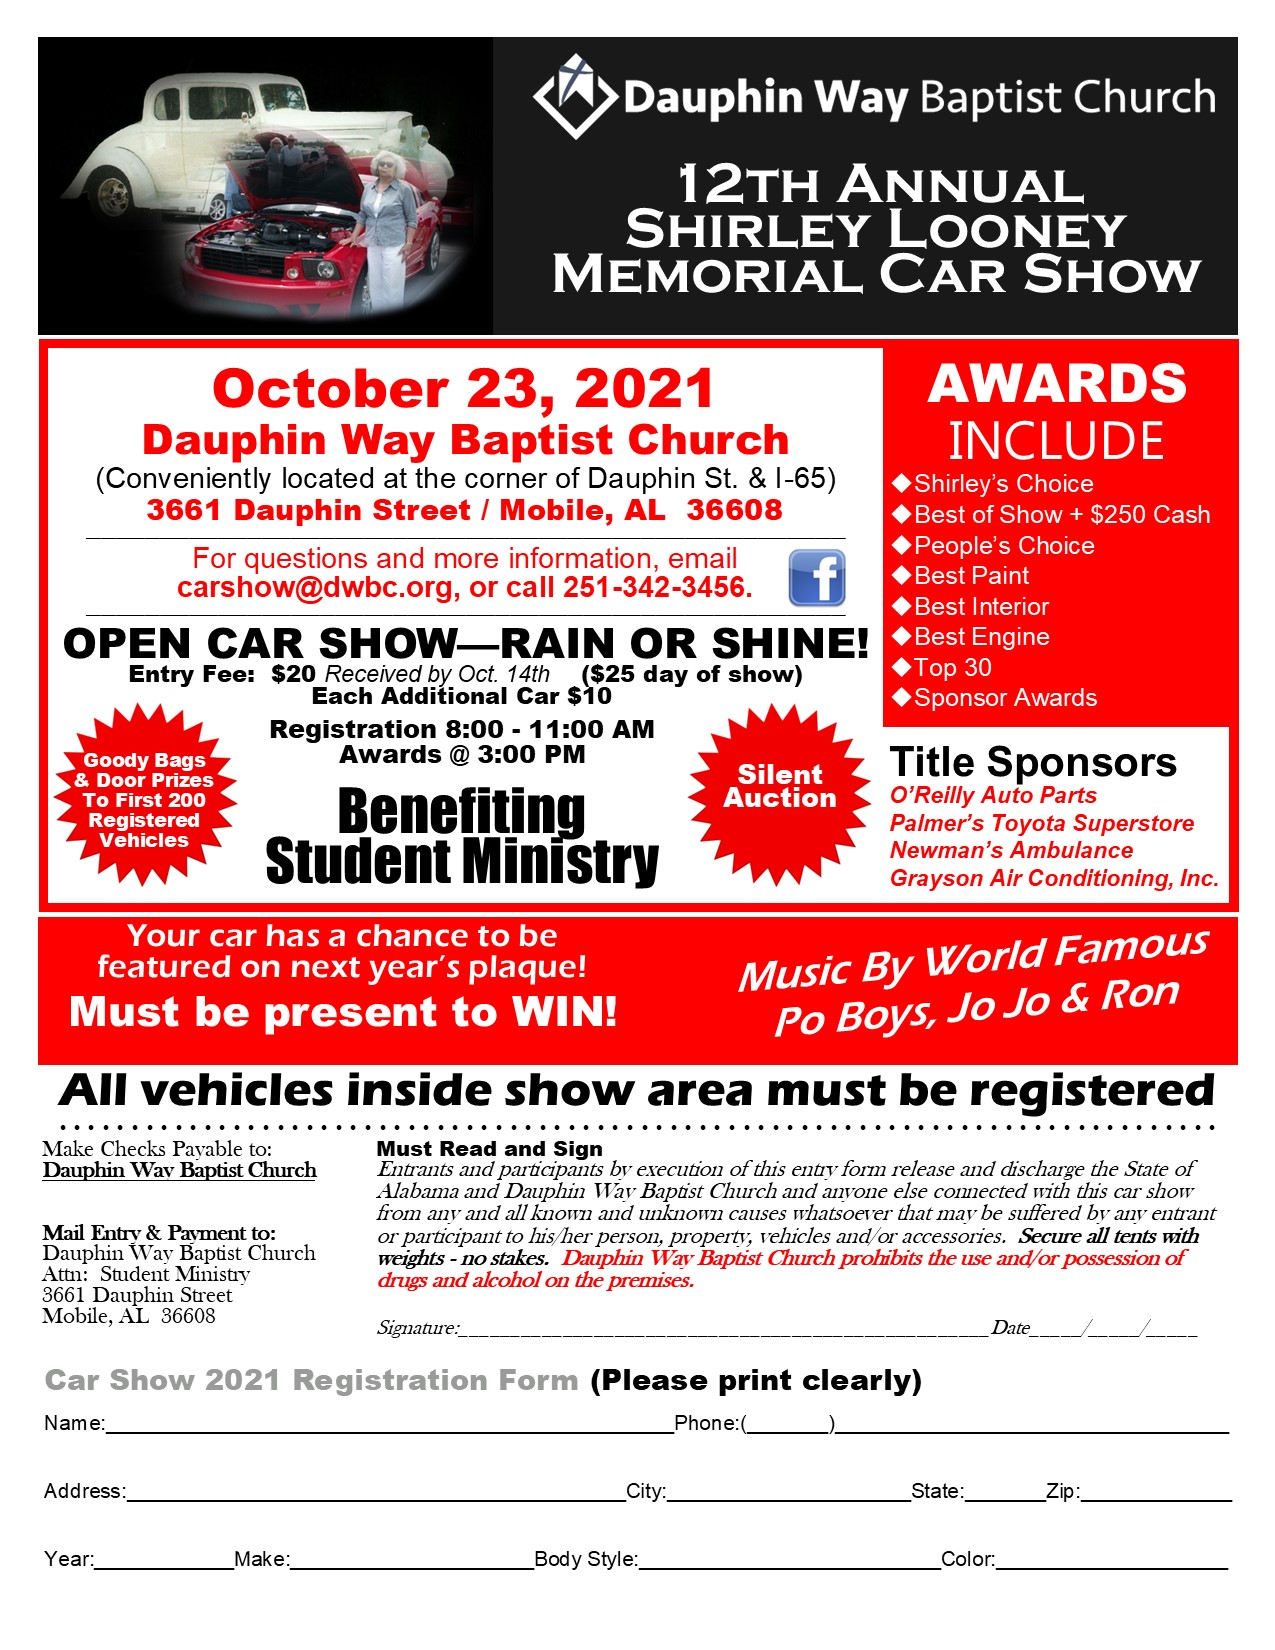 https://alabama-travel.s3.amazonaws.com/partners-uploads/photo/image/6024401d30459c0007cf30d3/Car Show Flyer 2021.jpg